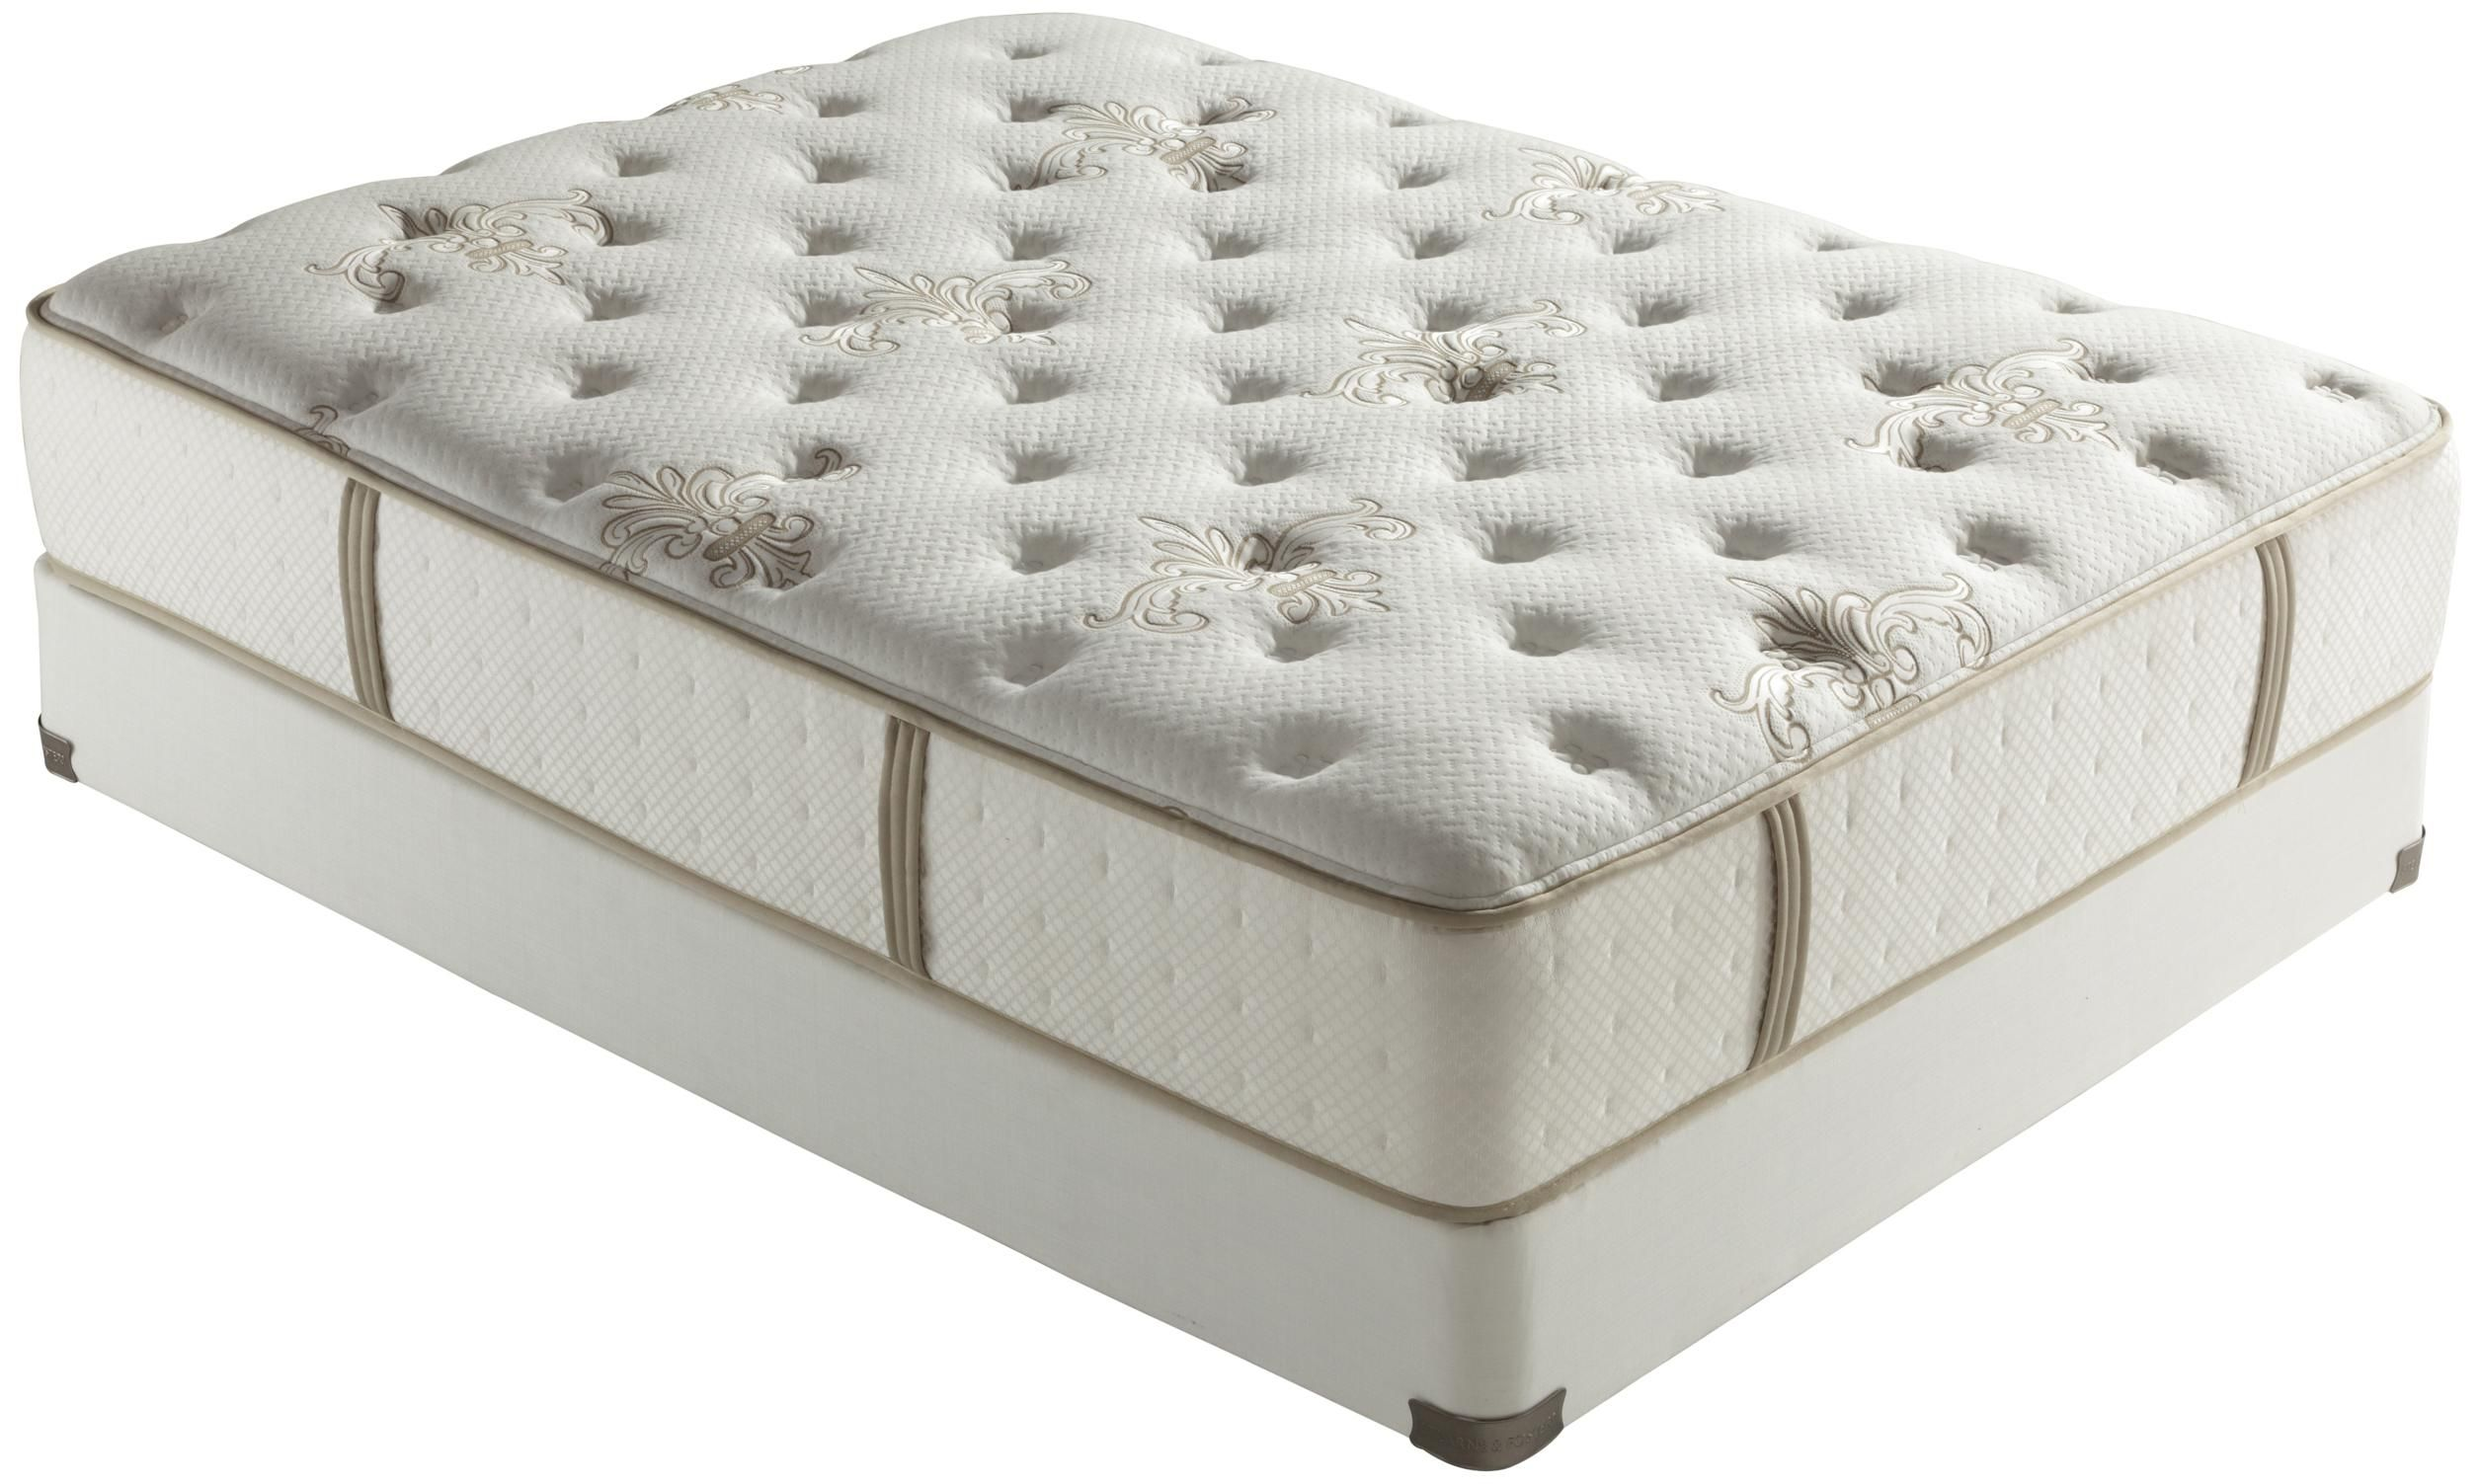 mattress clarity blog and review loom matters reviews leaf